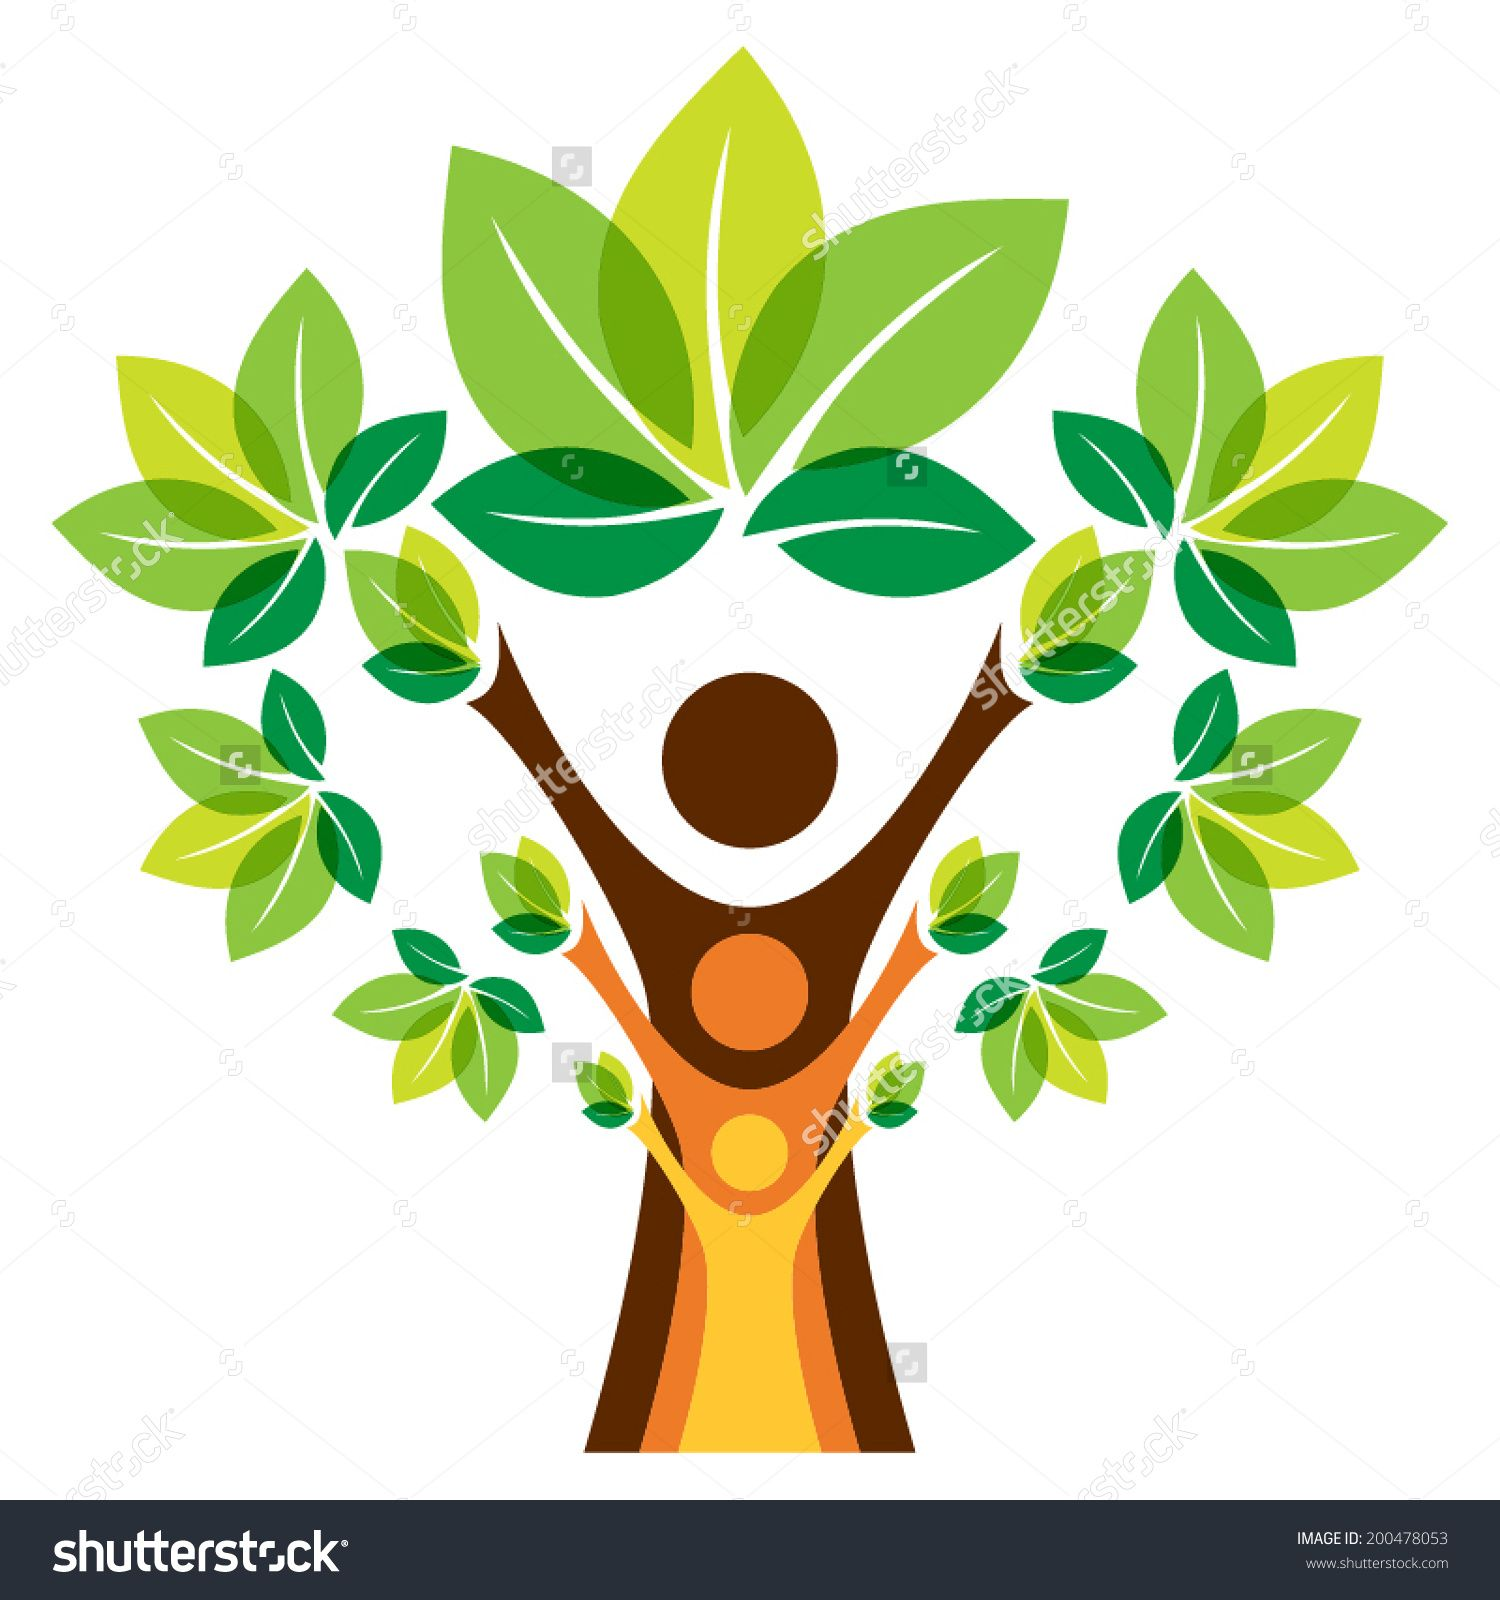 Family Tree Logo - Pin by Shreyass Arka on AYURVEDA | Tree logos, Family tree images, Logos